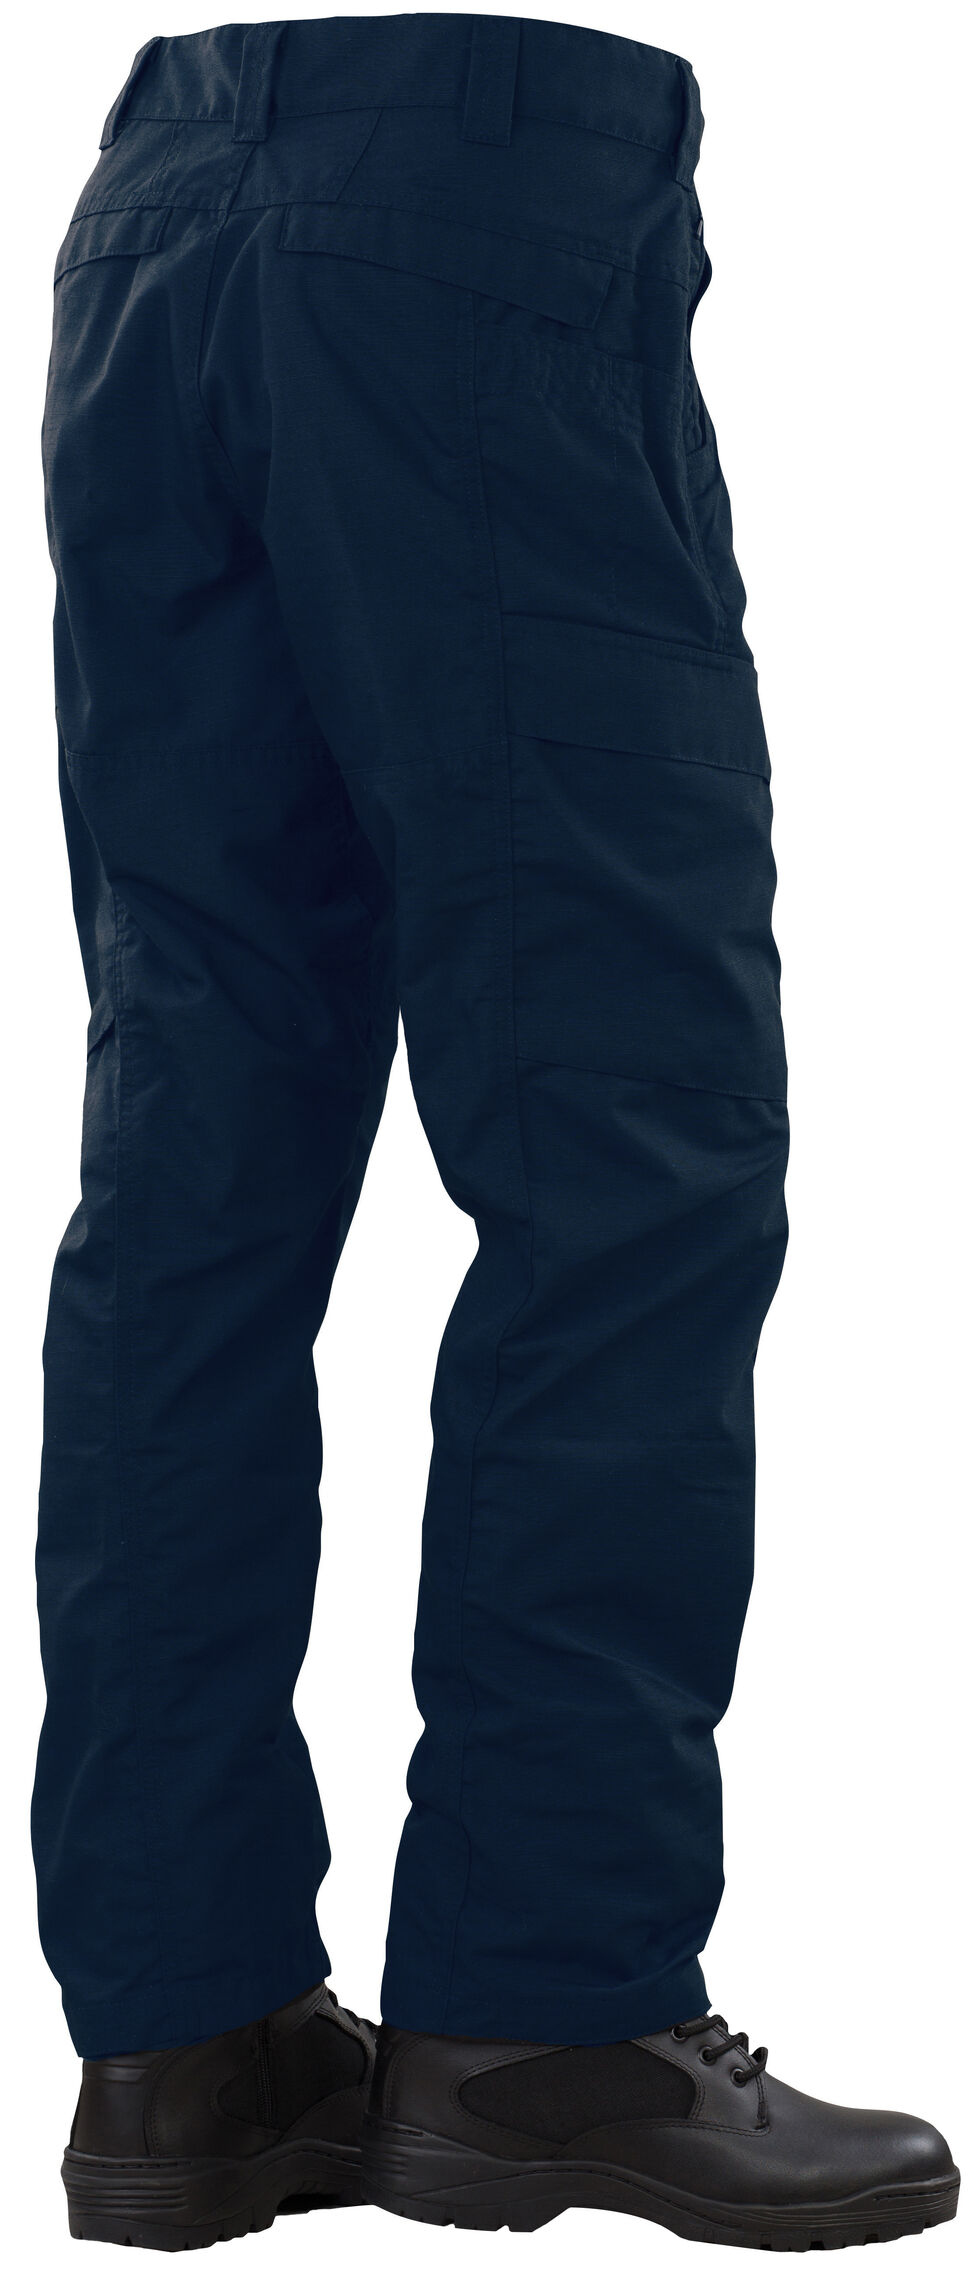 Tru-Spec Men's Navy Urban Force TRU Pants, Navy, hi-res